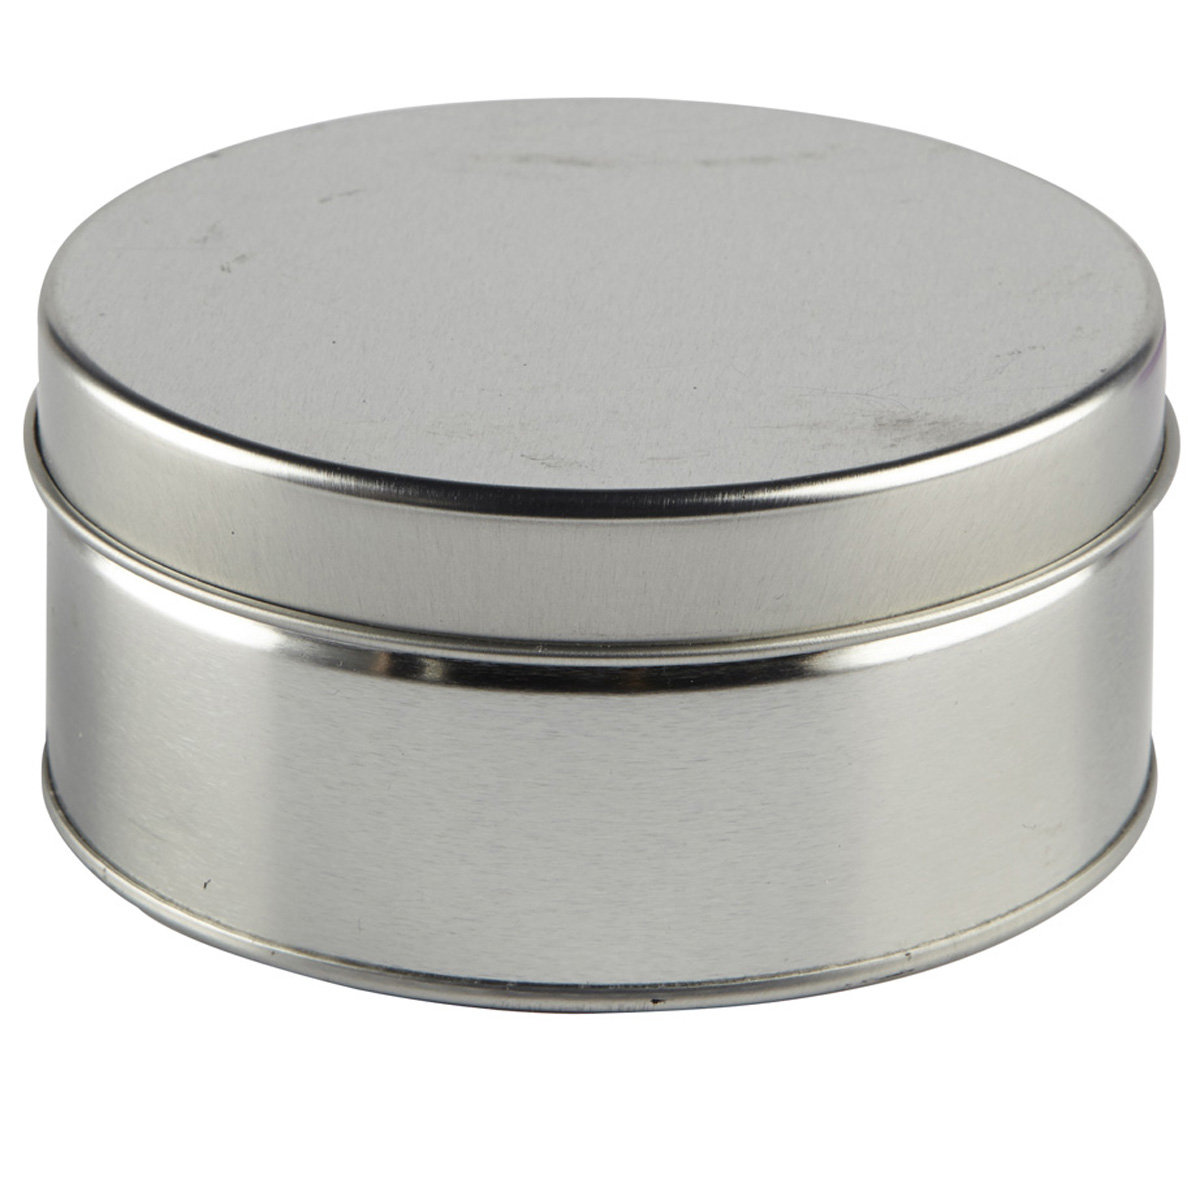 Find the Small Silver Round Tin by Celebrate It at Michaels